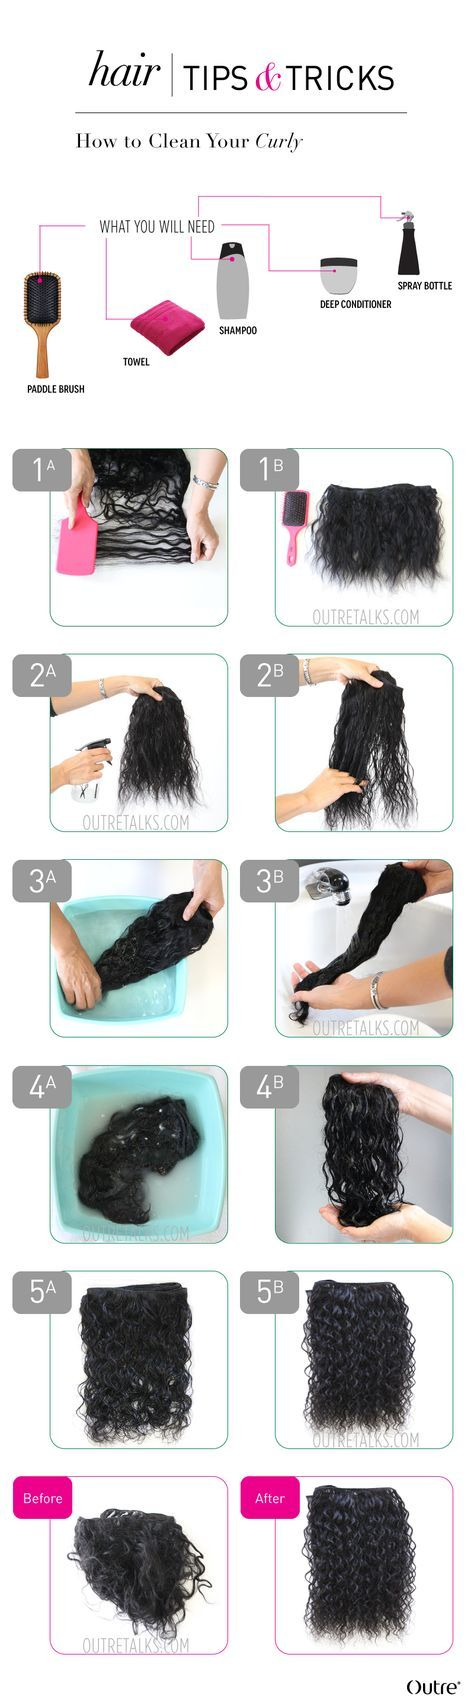 How to bring your curly weave back to life, how to clean curly weave, how to wash curly weave